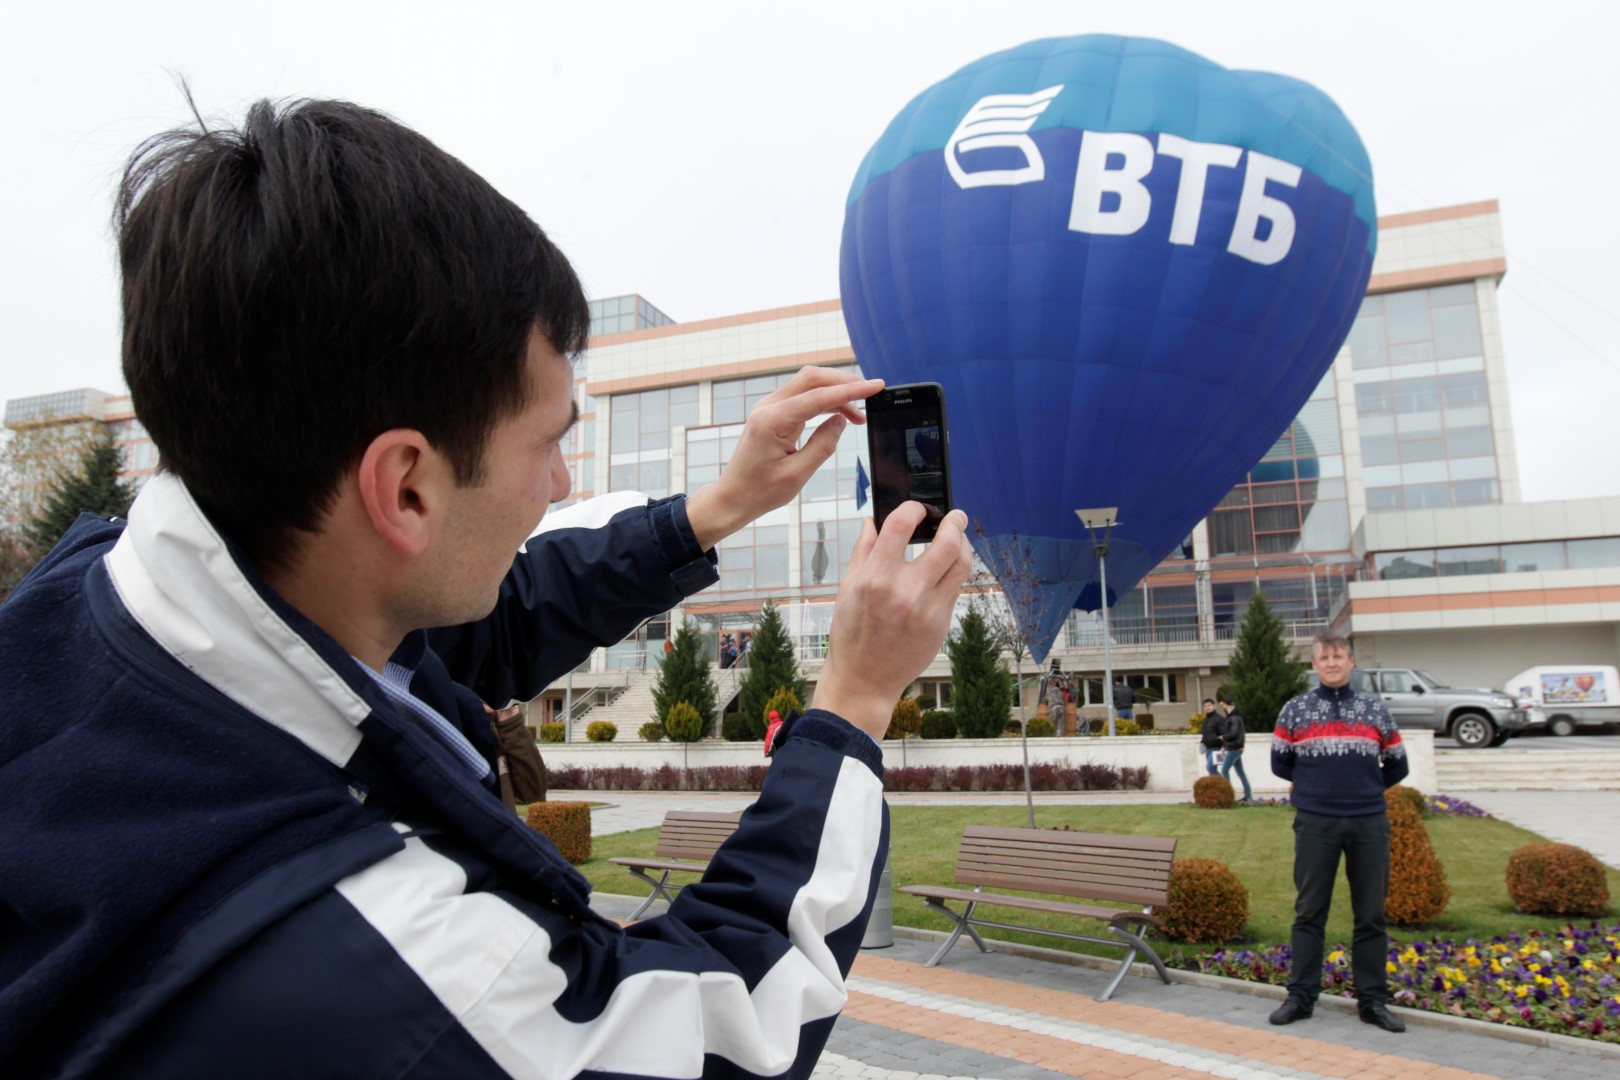 People take pictures in front of an air balloon, with the logo of VTB Bank displayed on it, in Essentuki, southern Russia, October 31, 2014. Russia's second-largest bank VTB expects a tough end to the year after posting a 98 percent slide in third-quarter profit because of higher provisions for bad loans, an economic slowdown and losses over Ukraine. Picture taken October 31, 2014. REUTERS/Eduard Korniyenko (RUSSIA - Tags: BUSINESS) - GM1EABL03MX01